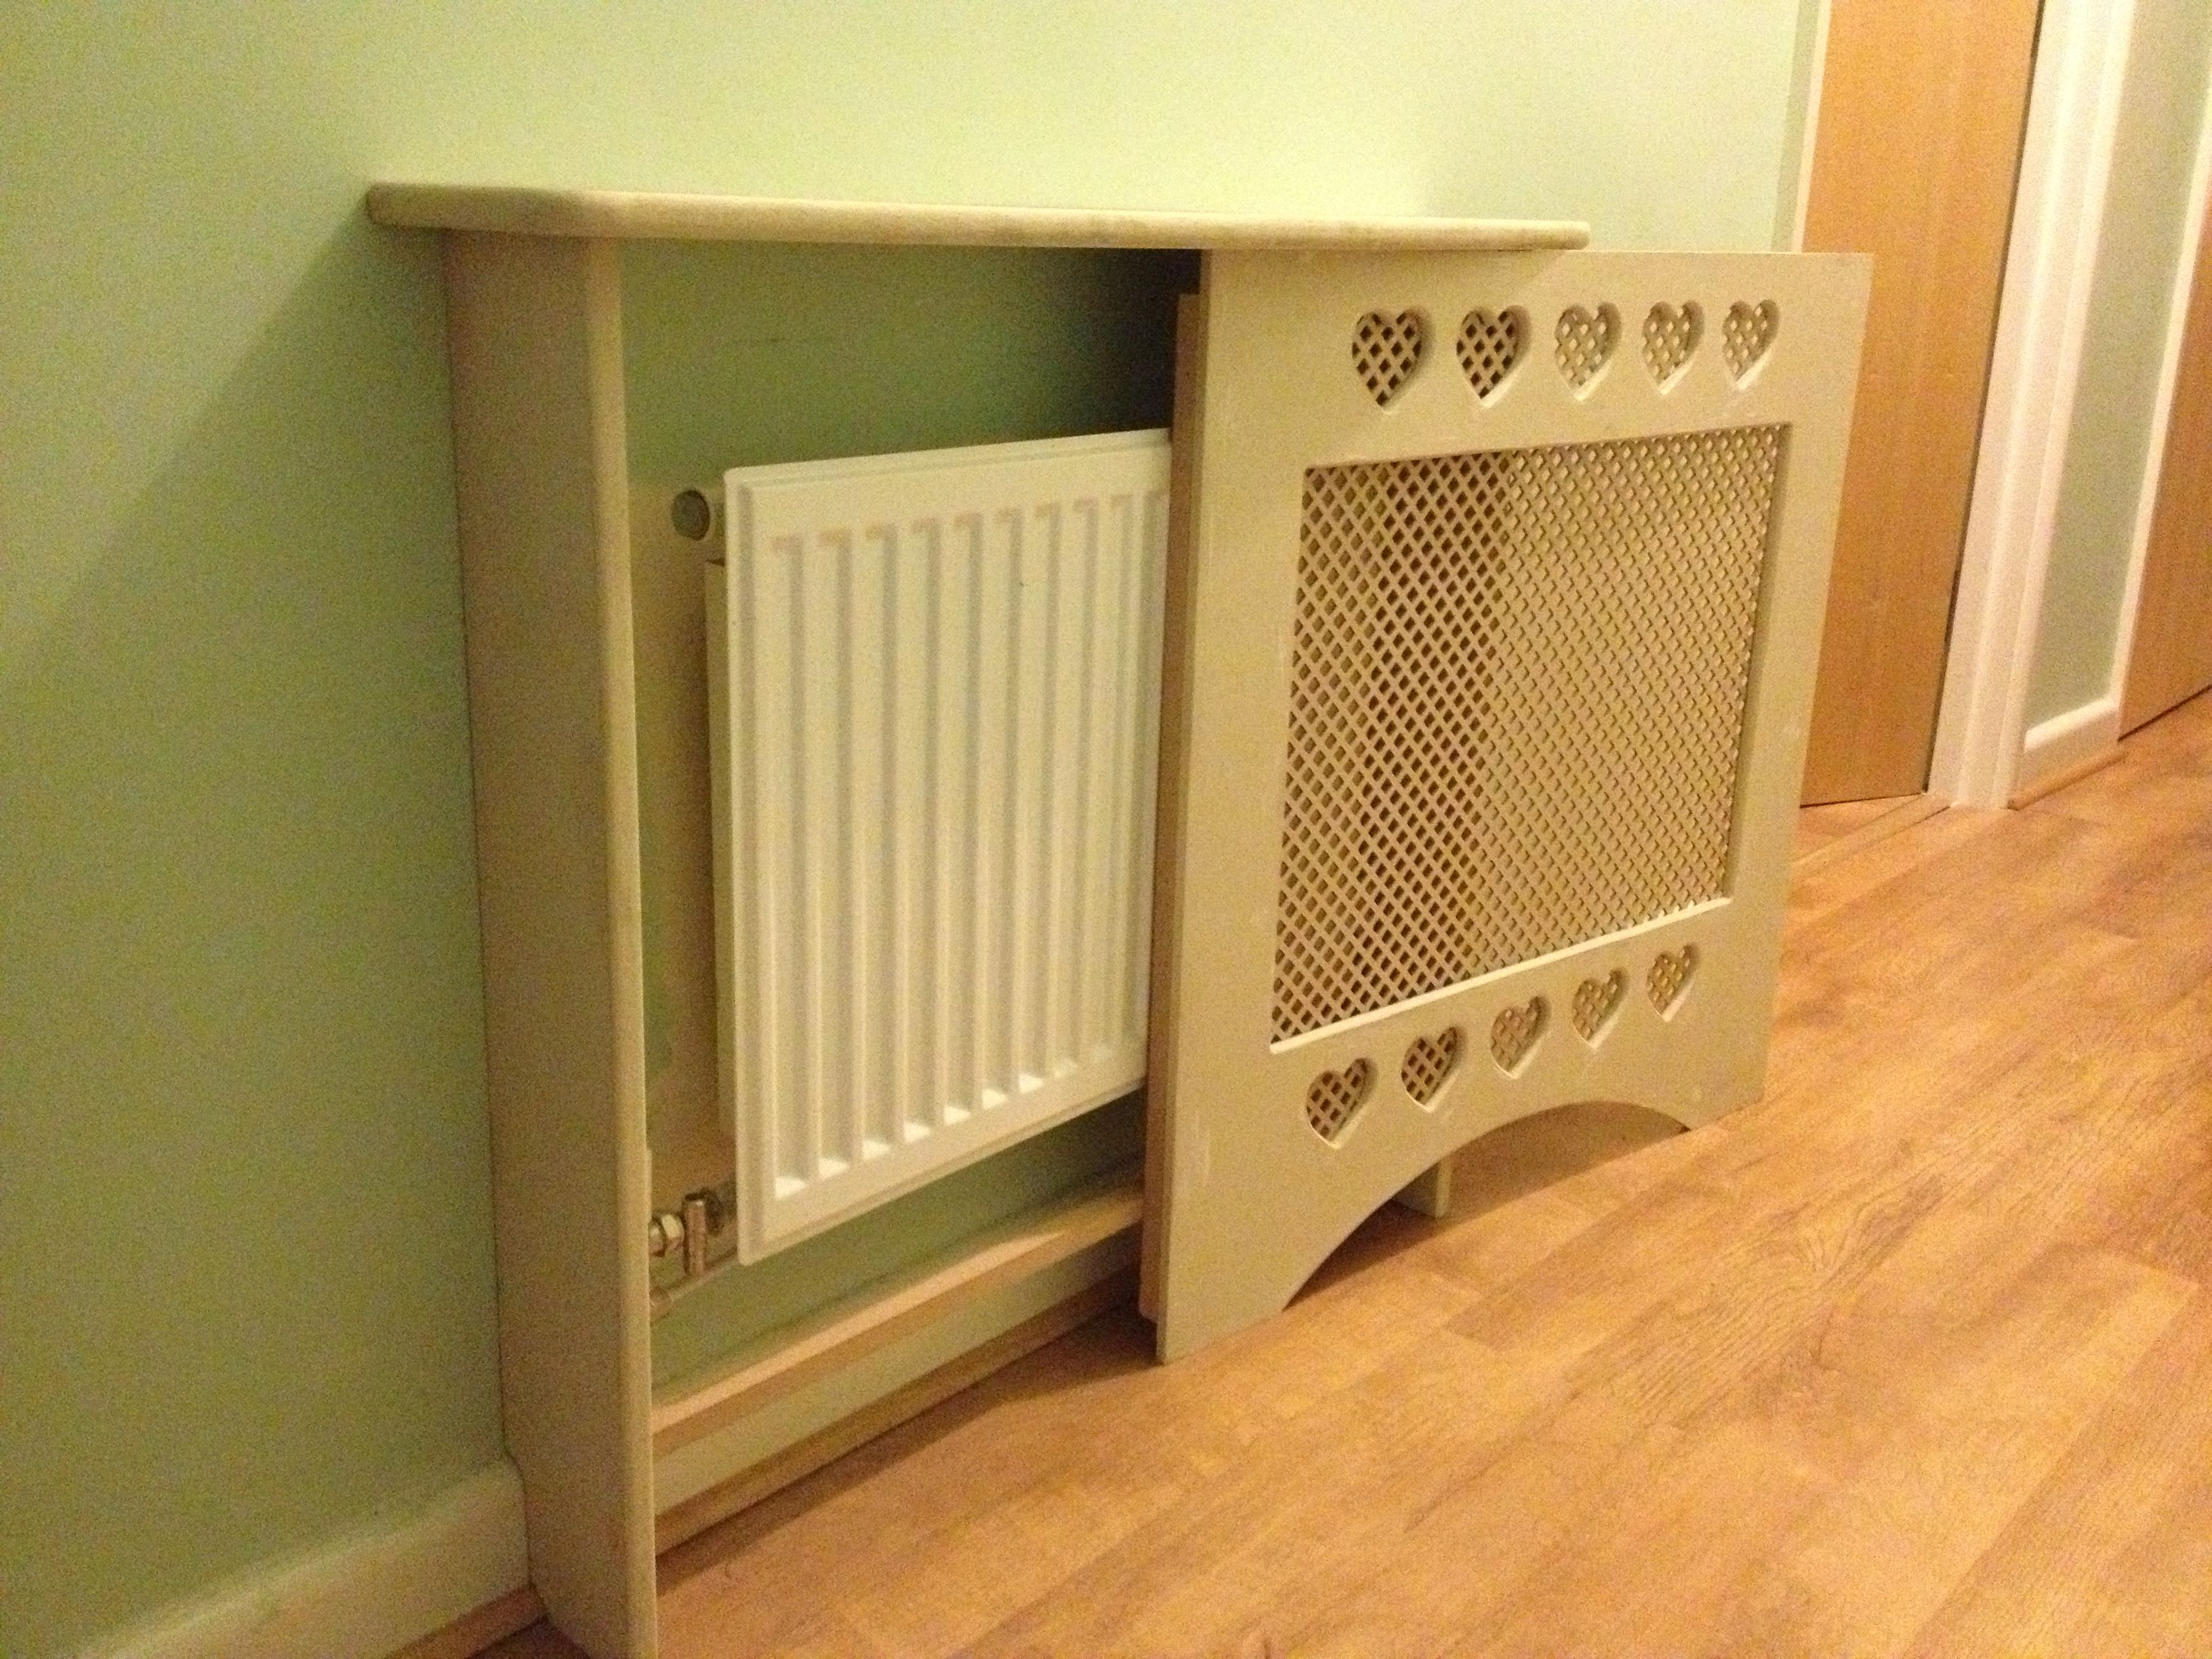 Removable radiator panels allows easy access for mainte ...